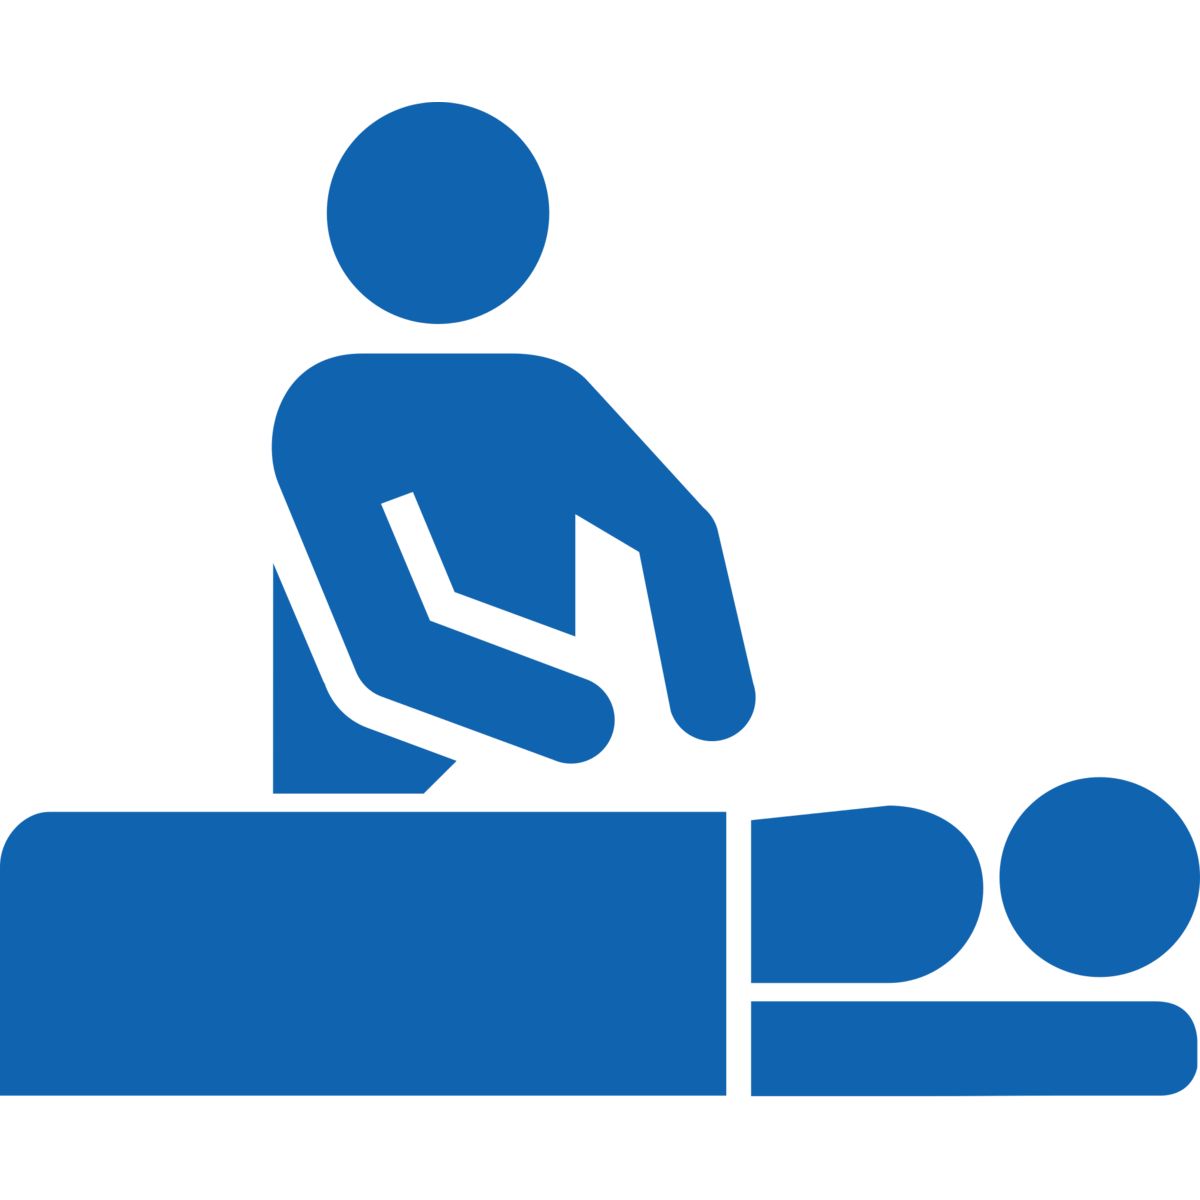 Counseling clipart icon. Physical therapy icons png